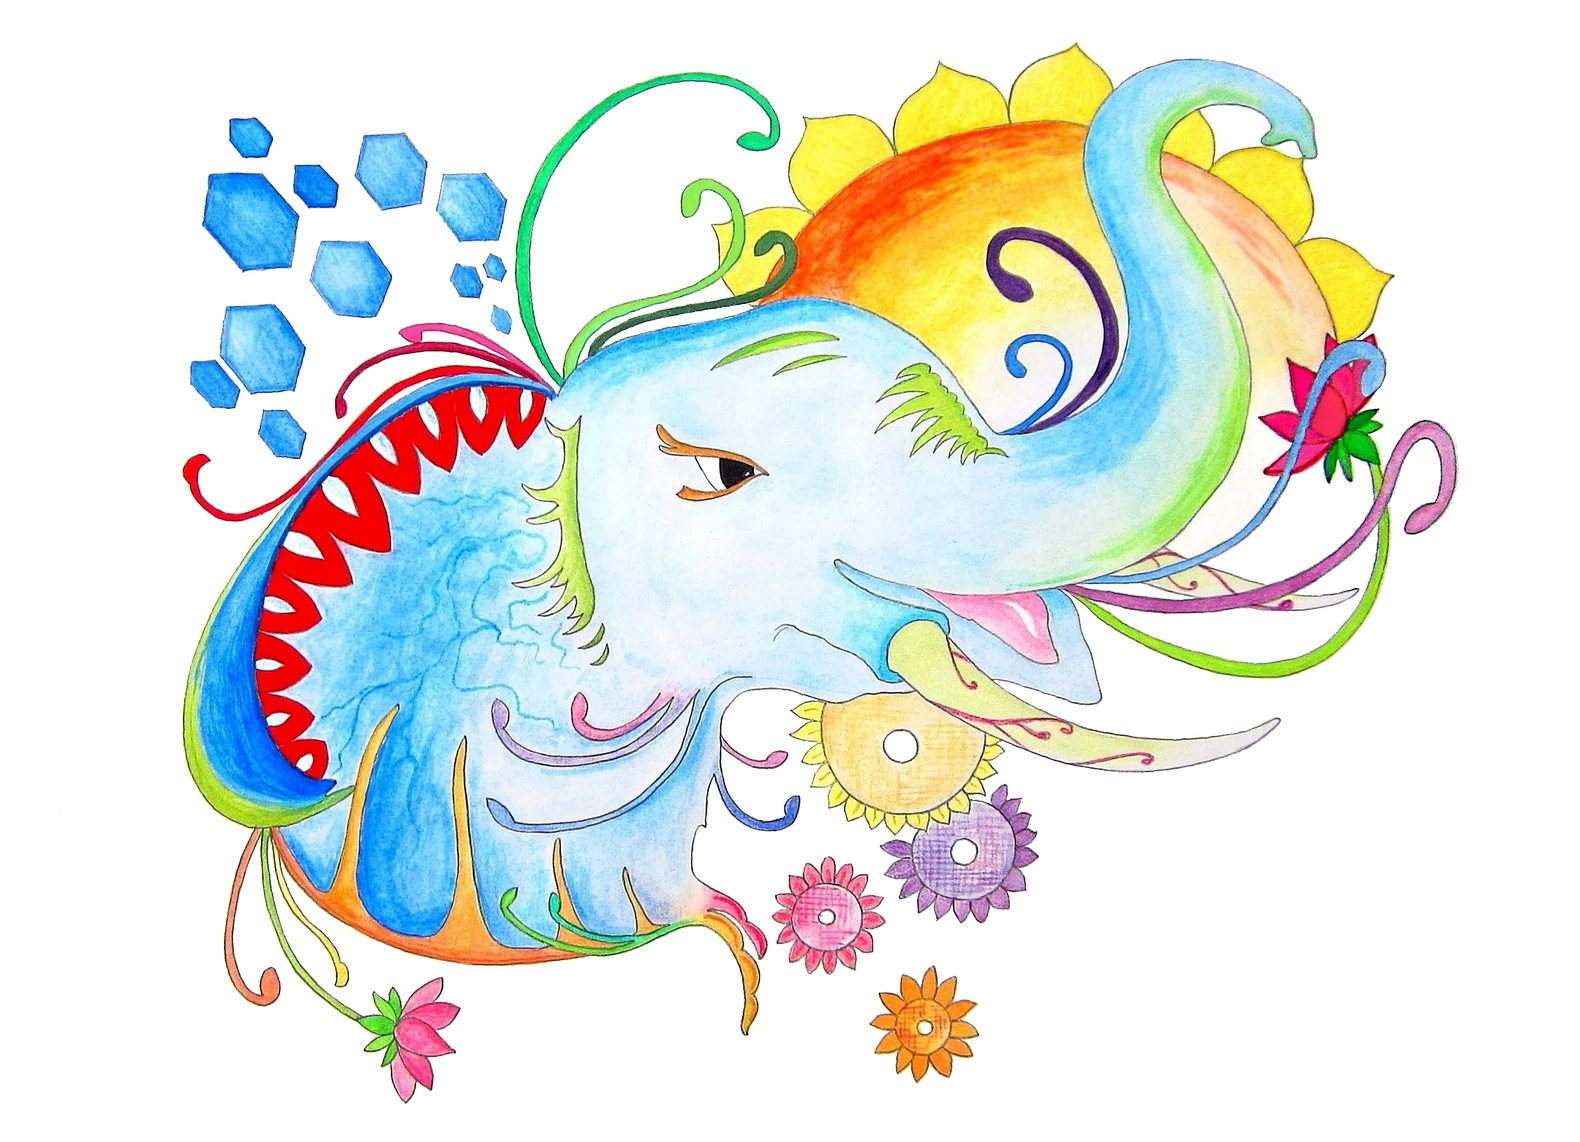 Colored drawing abstract. Elephant illustration set wall